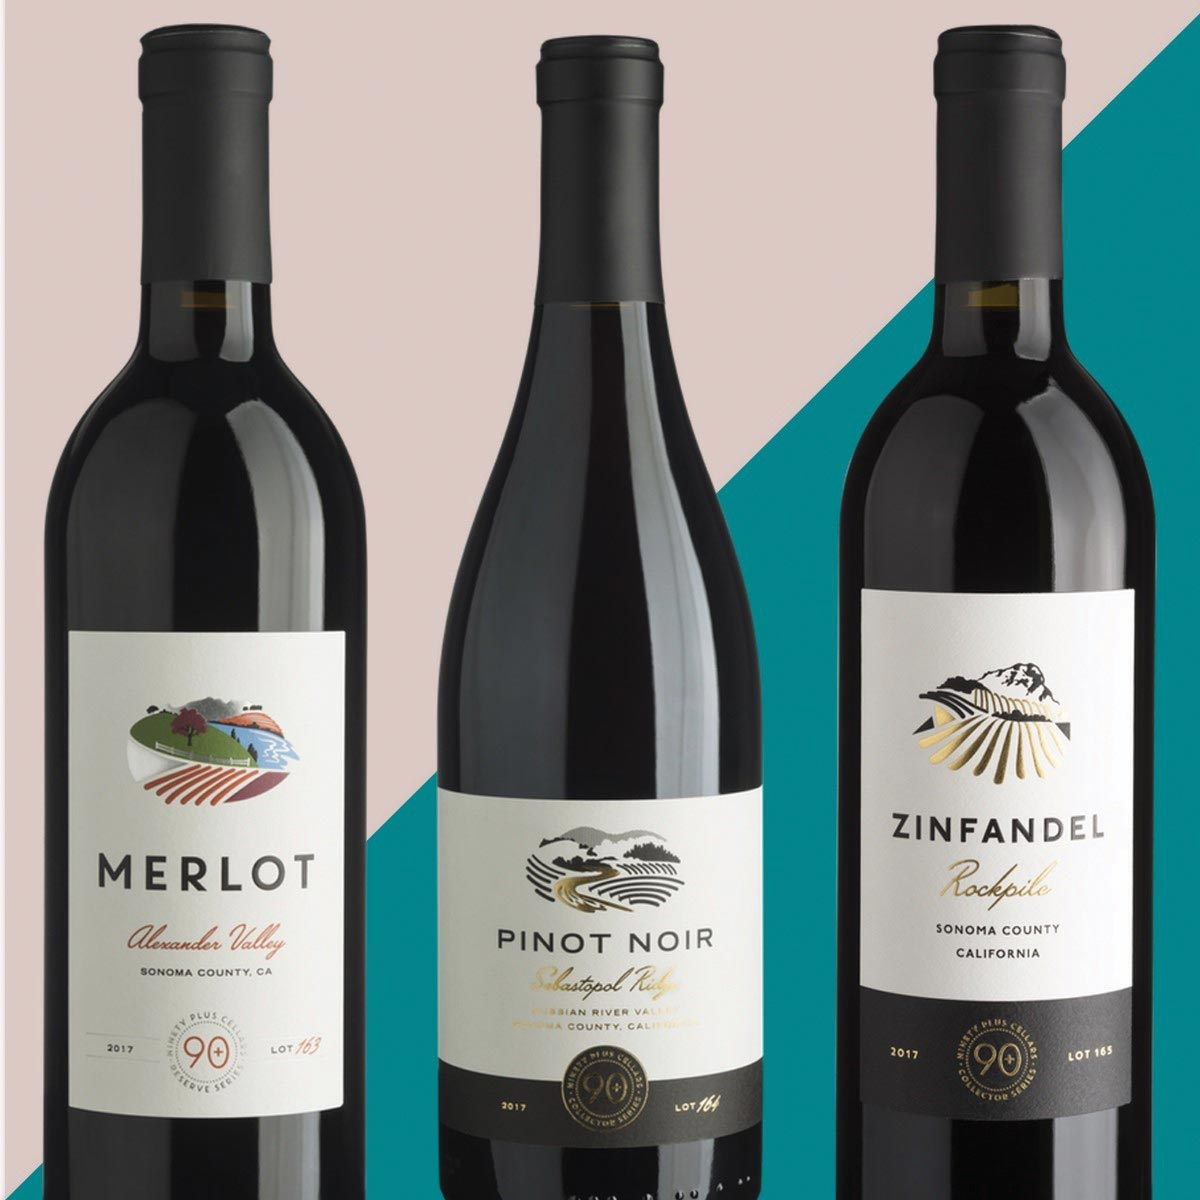 90+ Cellars Adds Three New California Wines